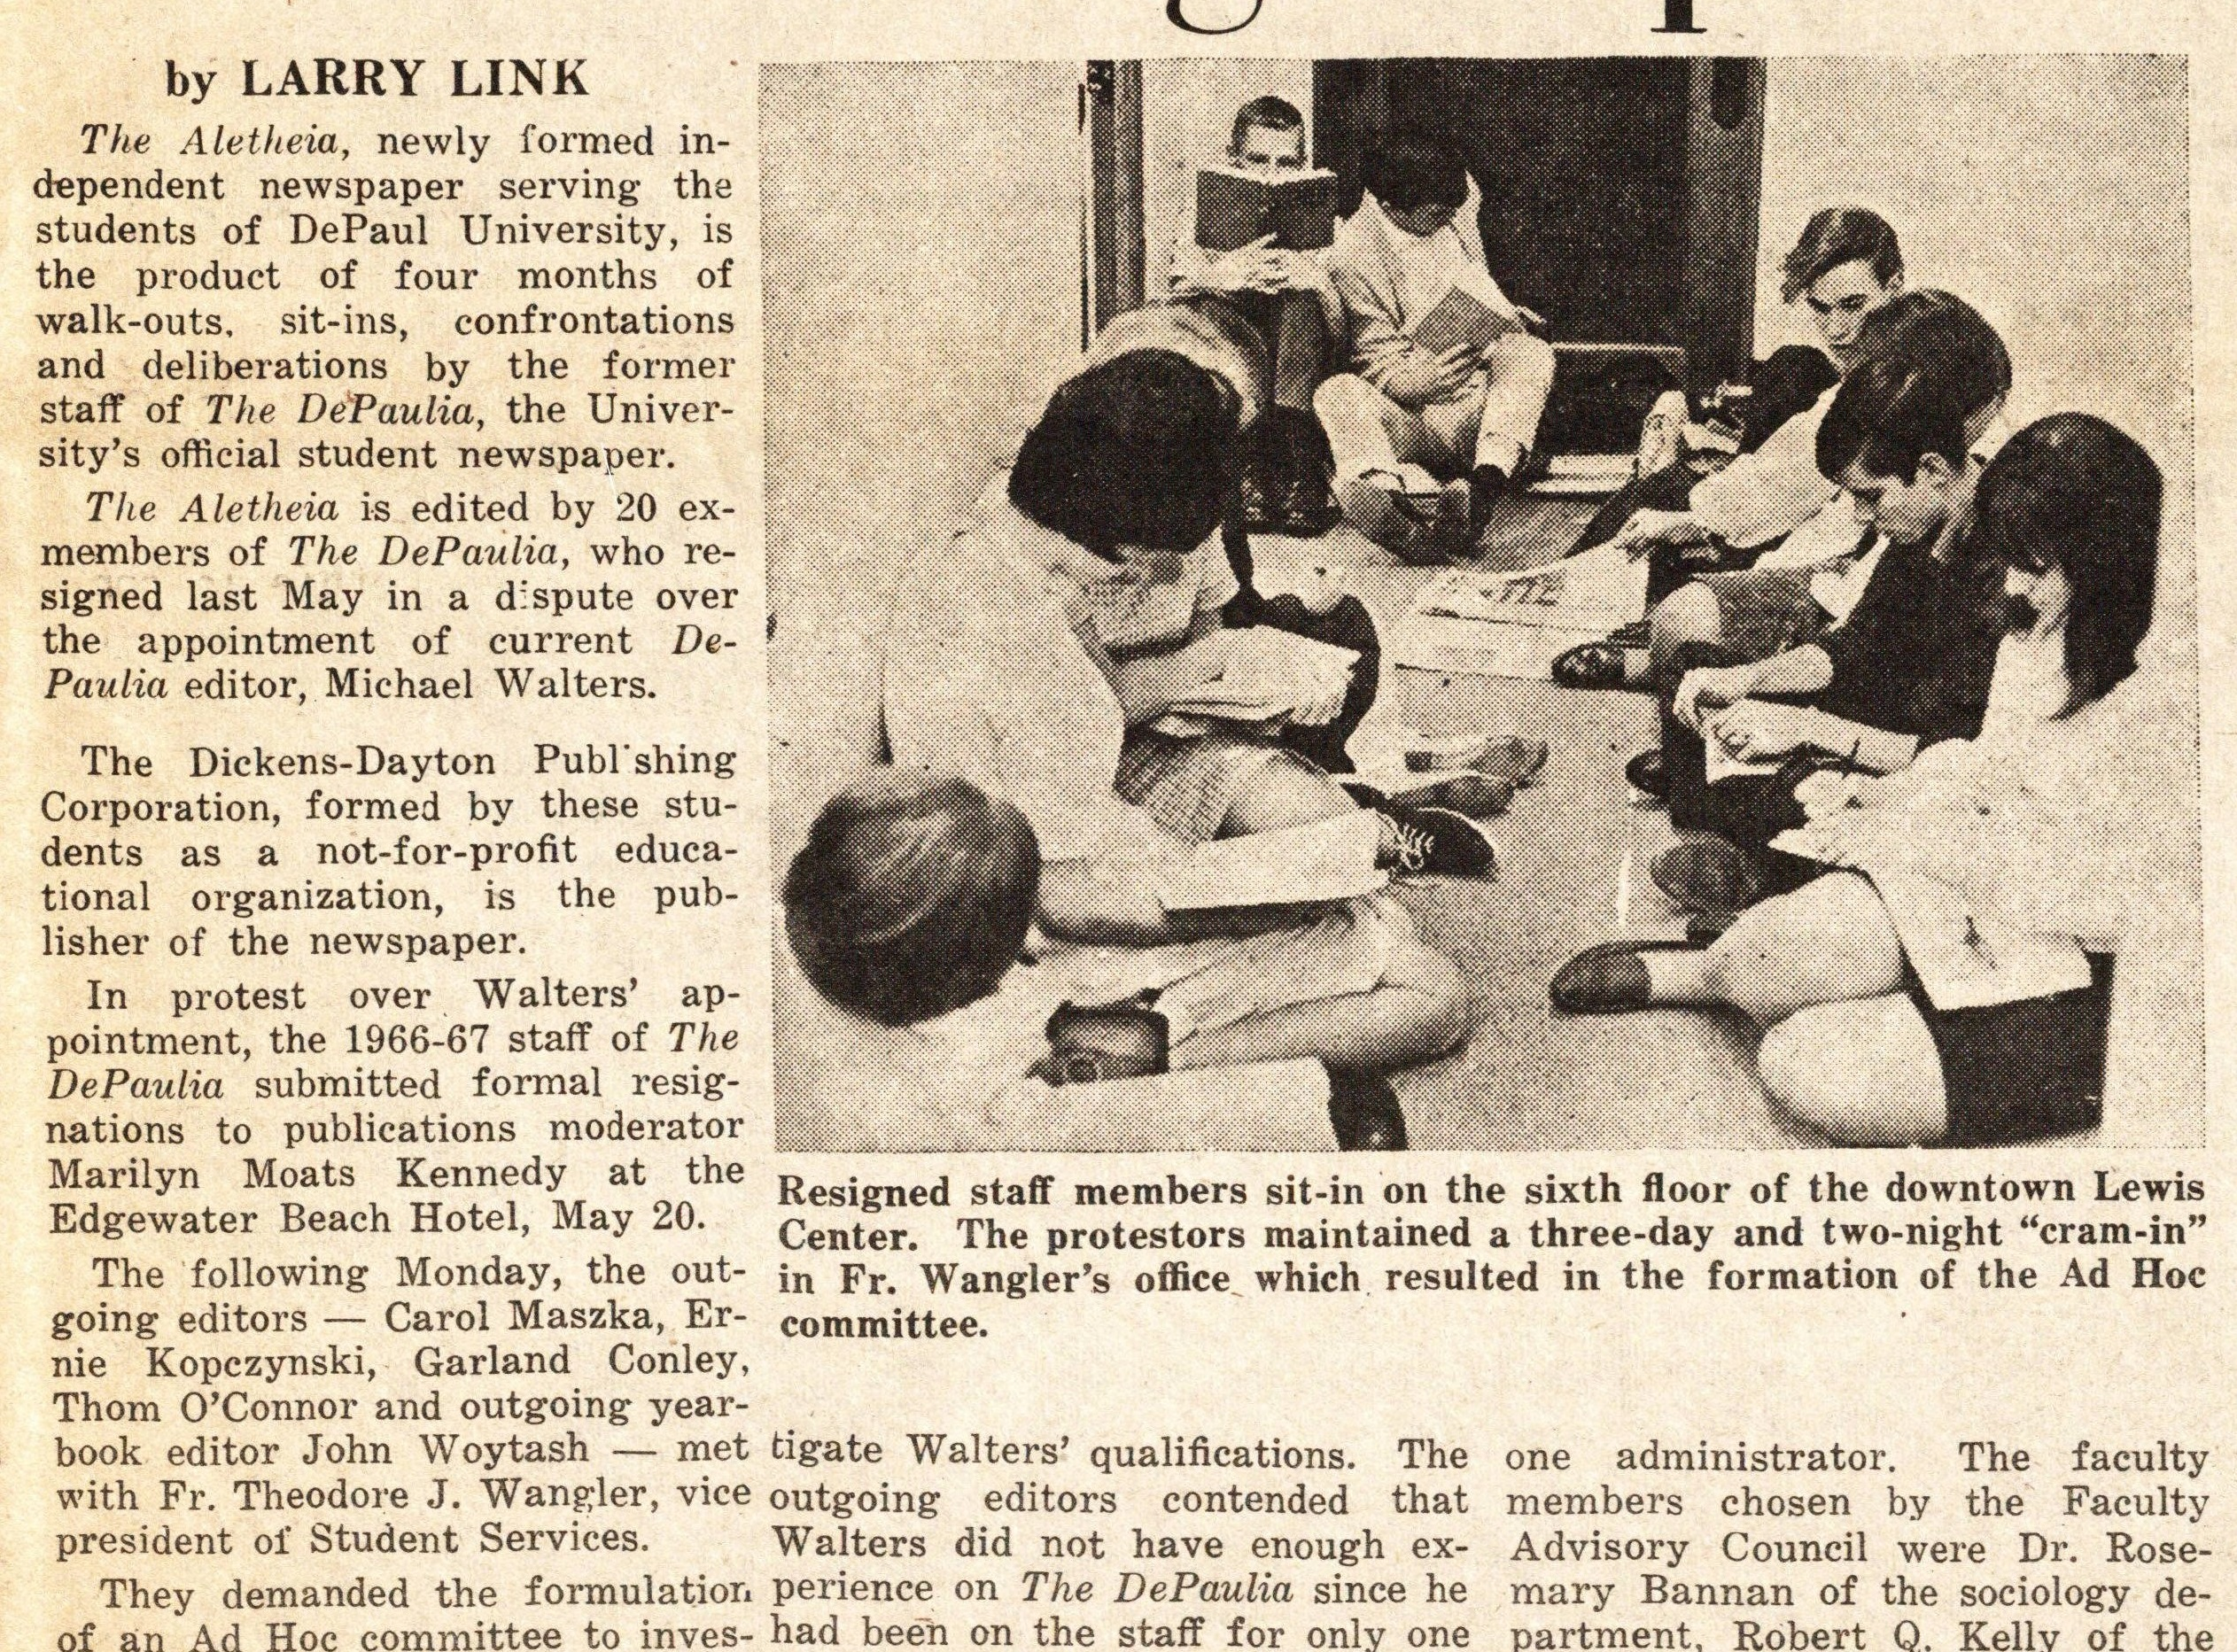 Student coverage of the DePaul Cram-in (courtesy of the DePaul Richardson Library Digital Collections)